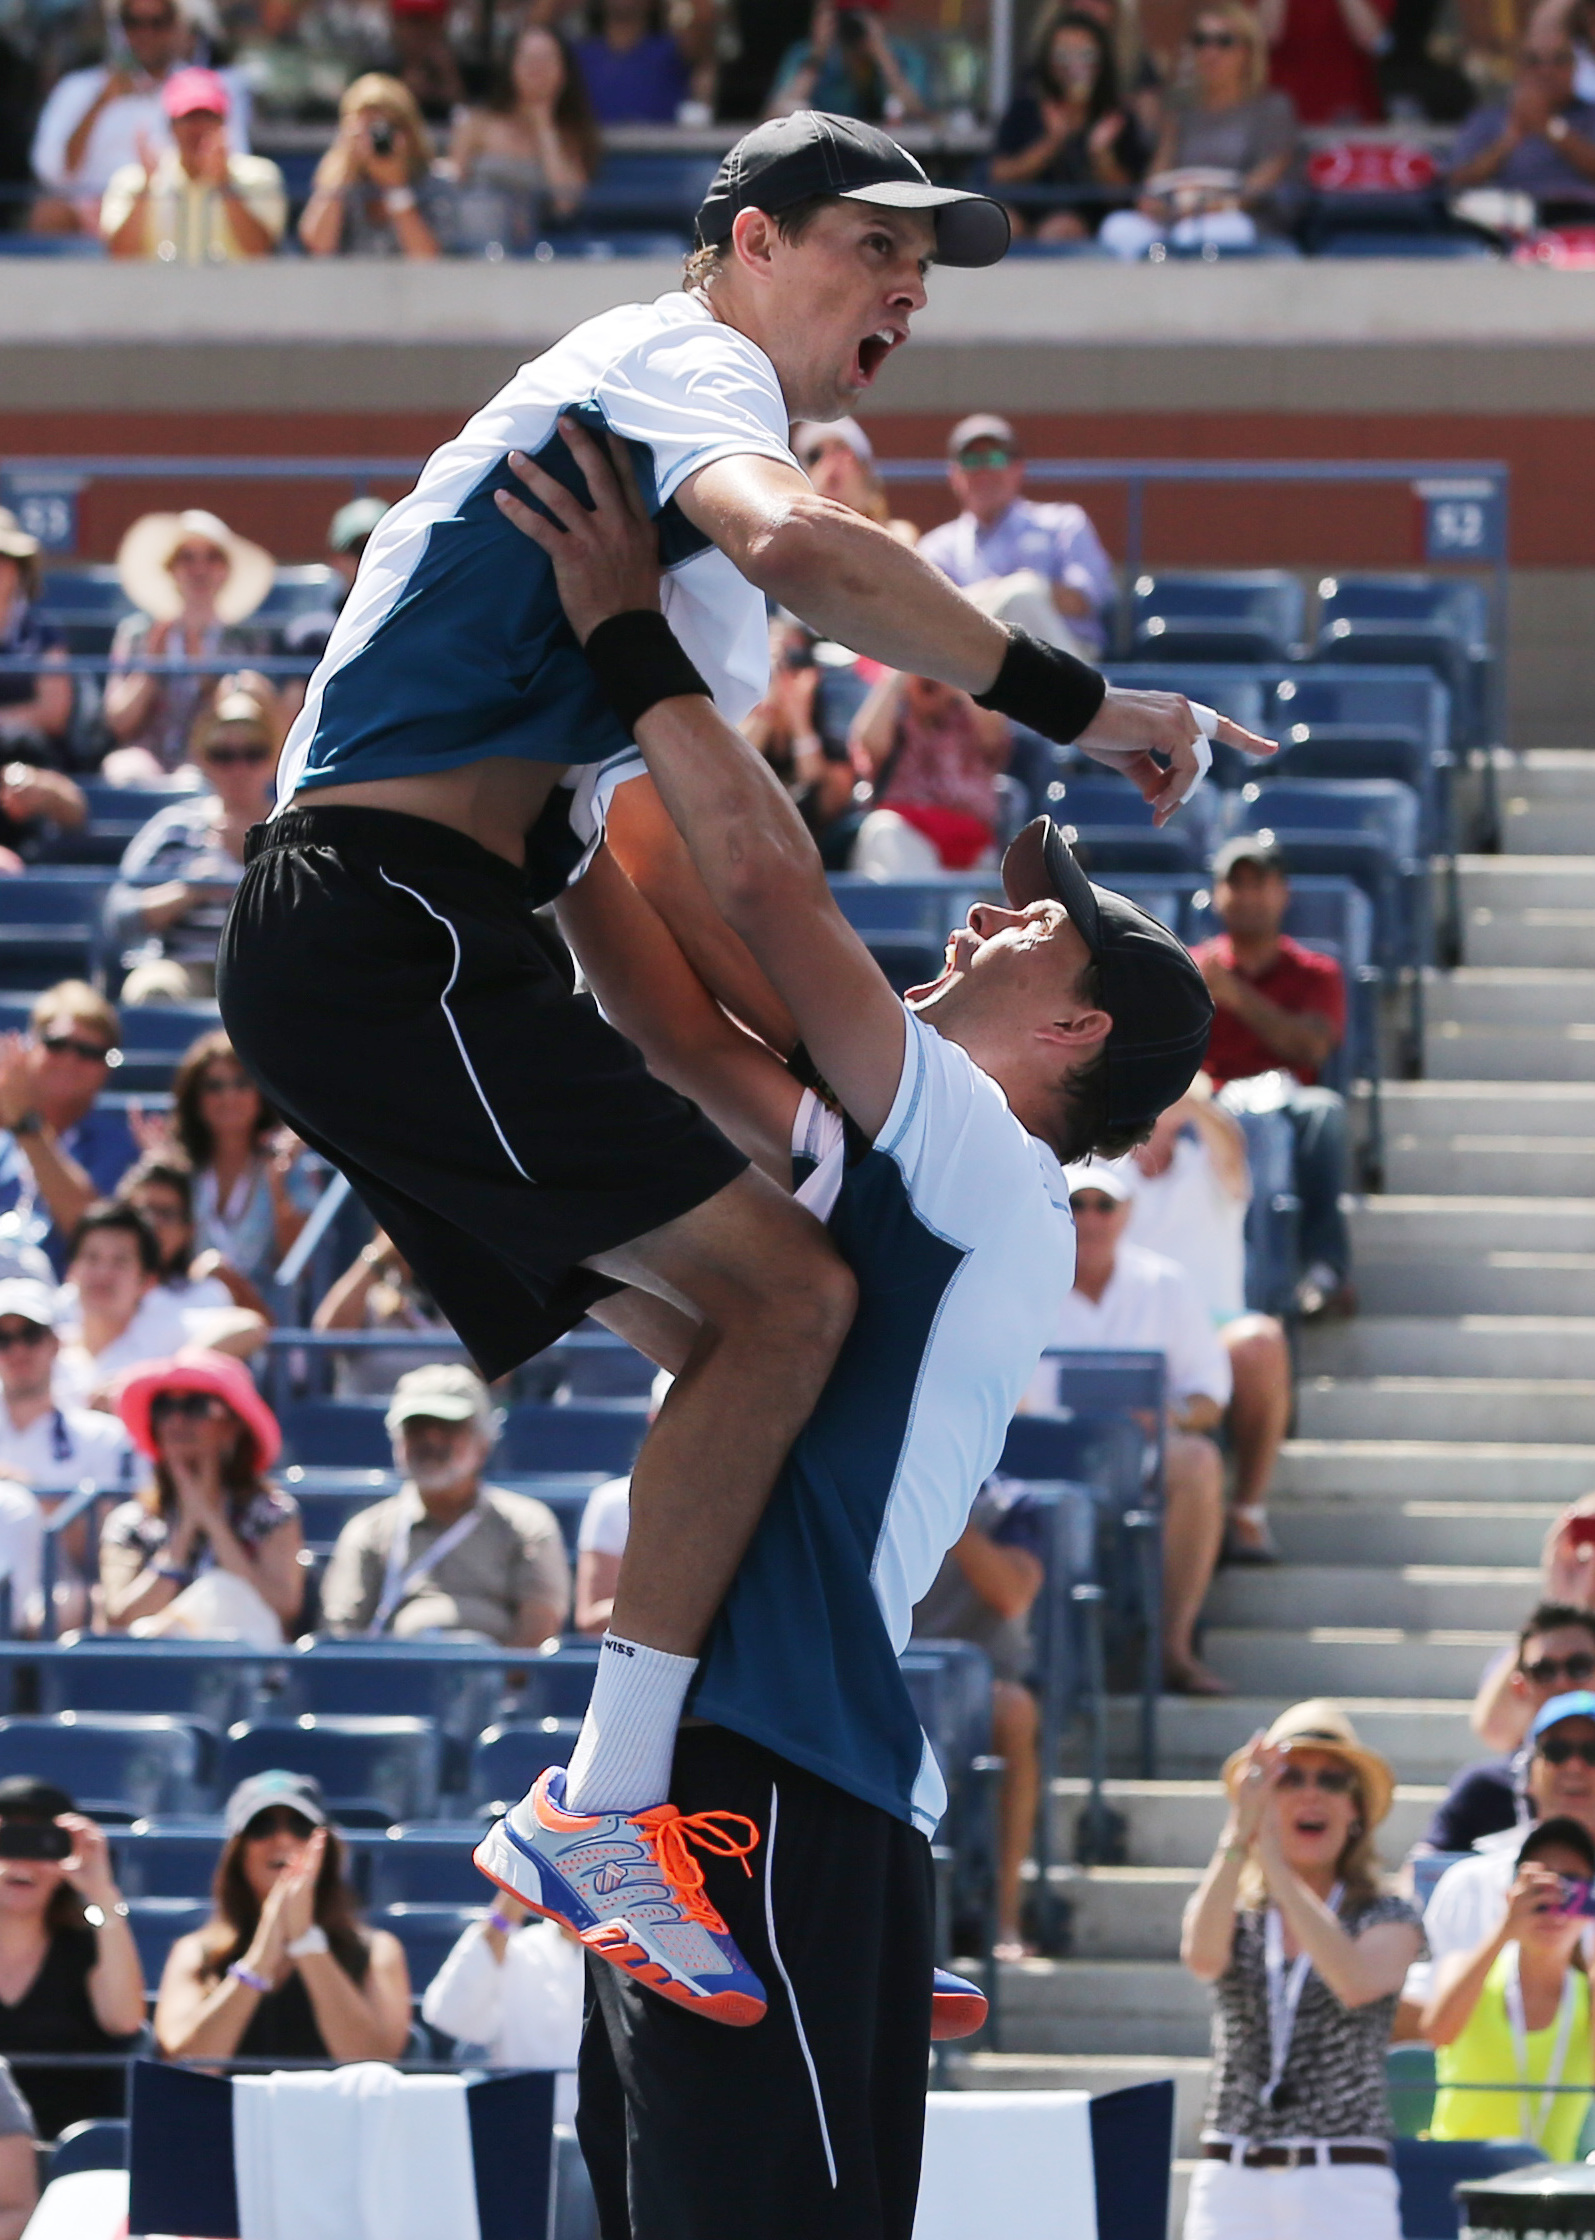 Bryan brothers win 5th US Open title, 16th major   The Spokesman-Review